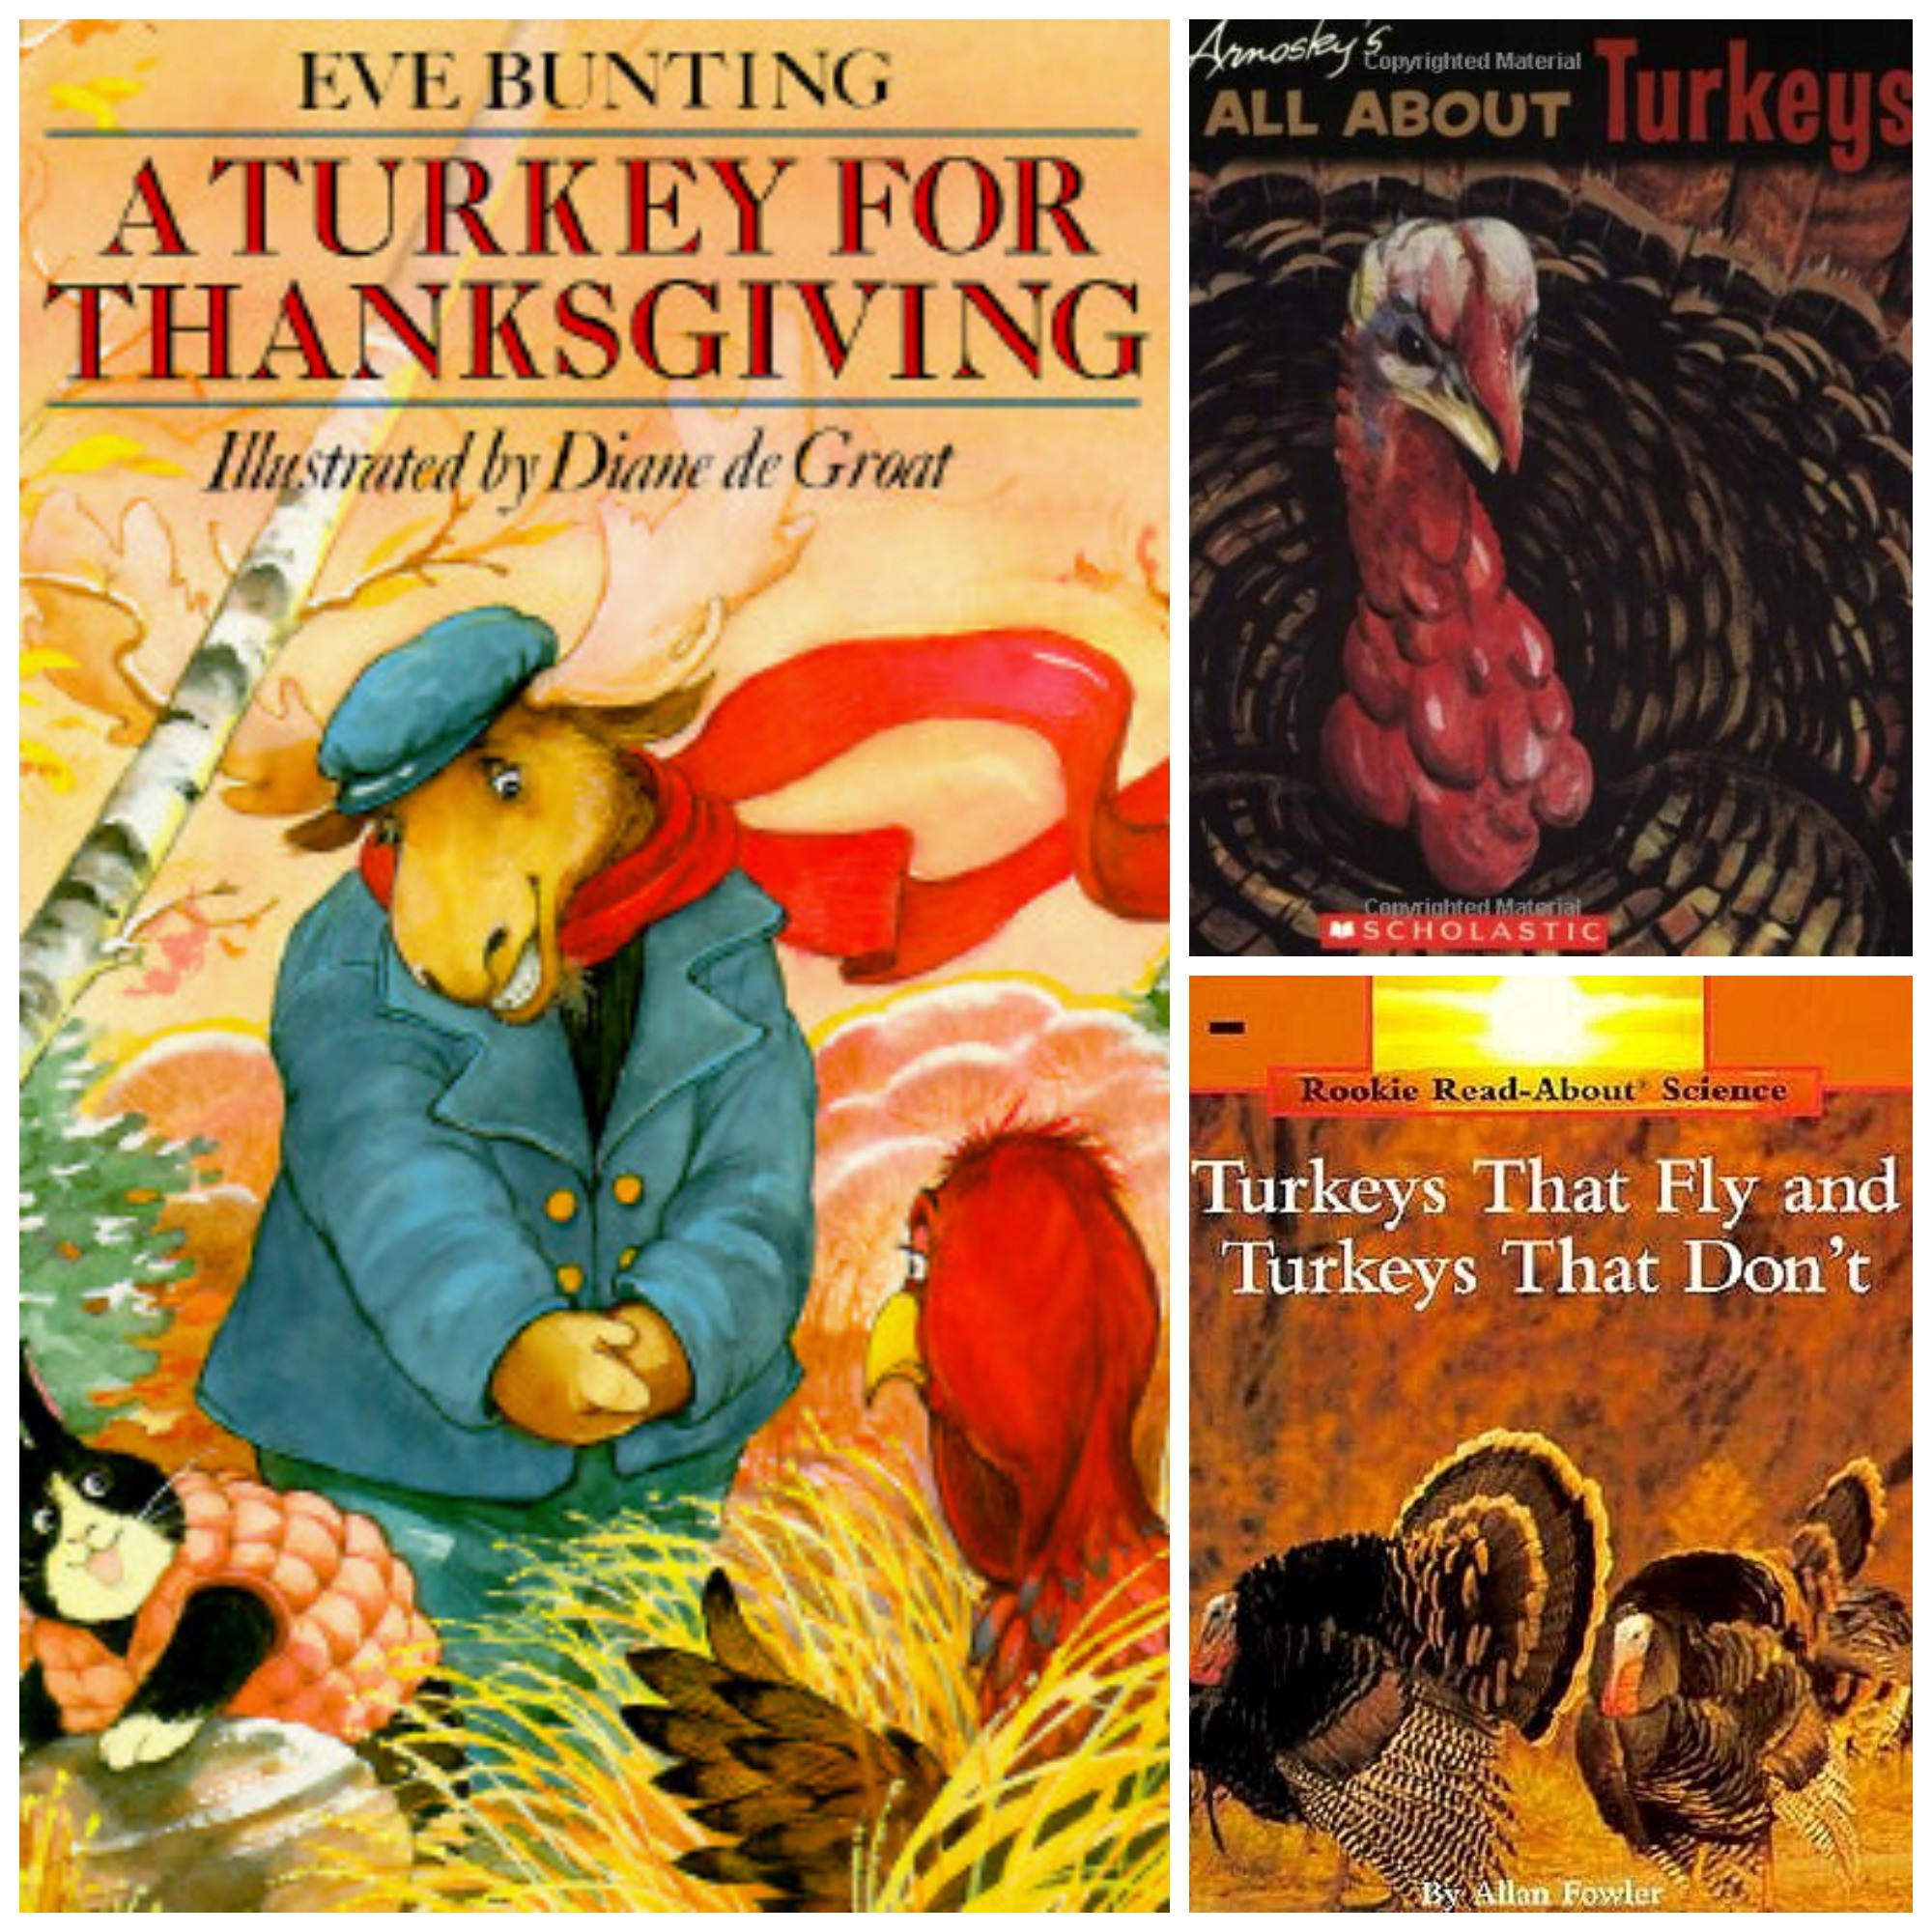 A Turkey For Thanksgiving By Eve Bunting Activities  Our Crafts N Things Blog Archive Poppins Book Nook